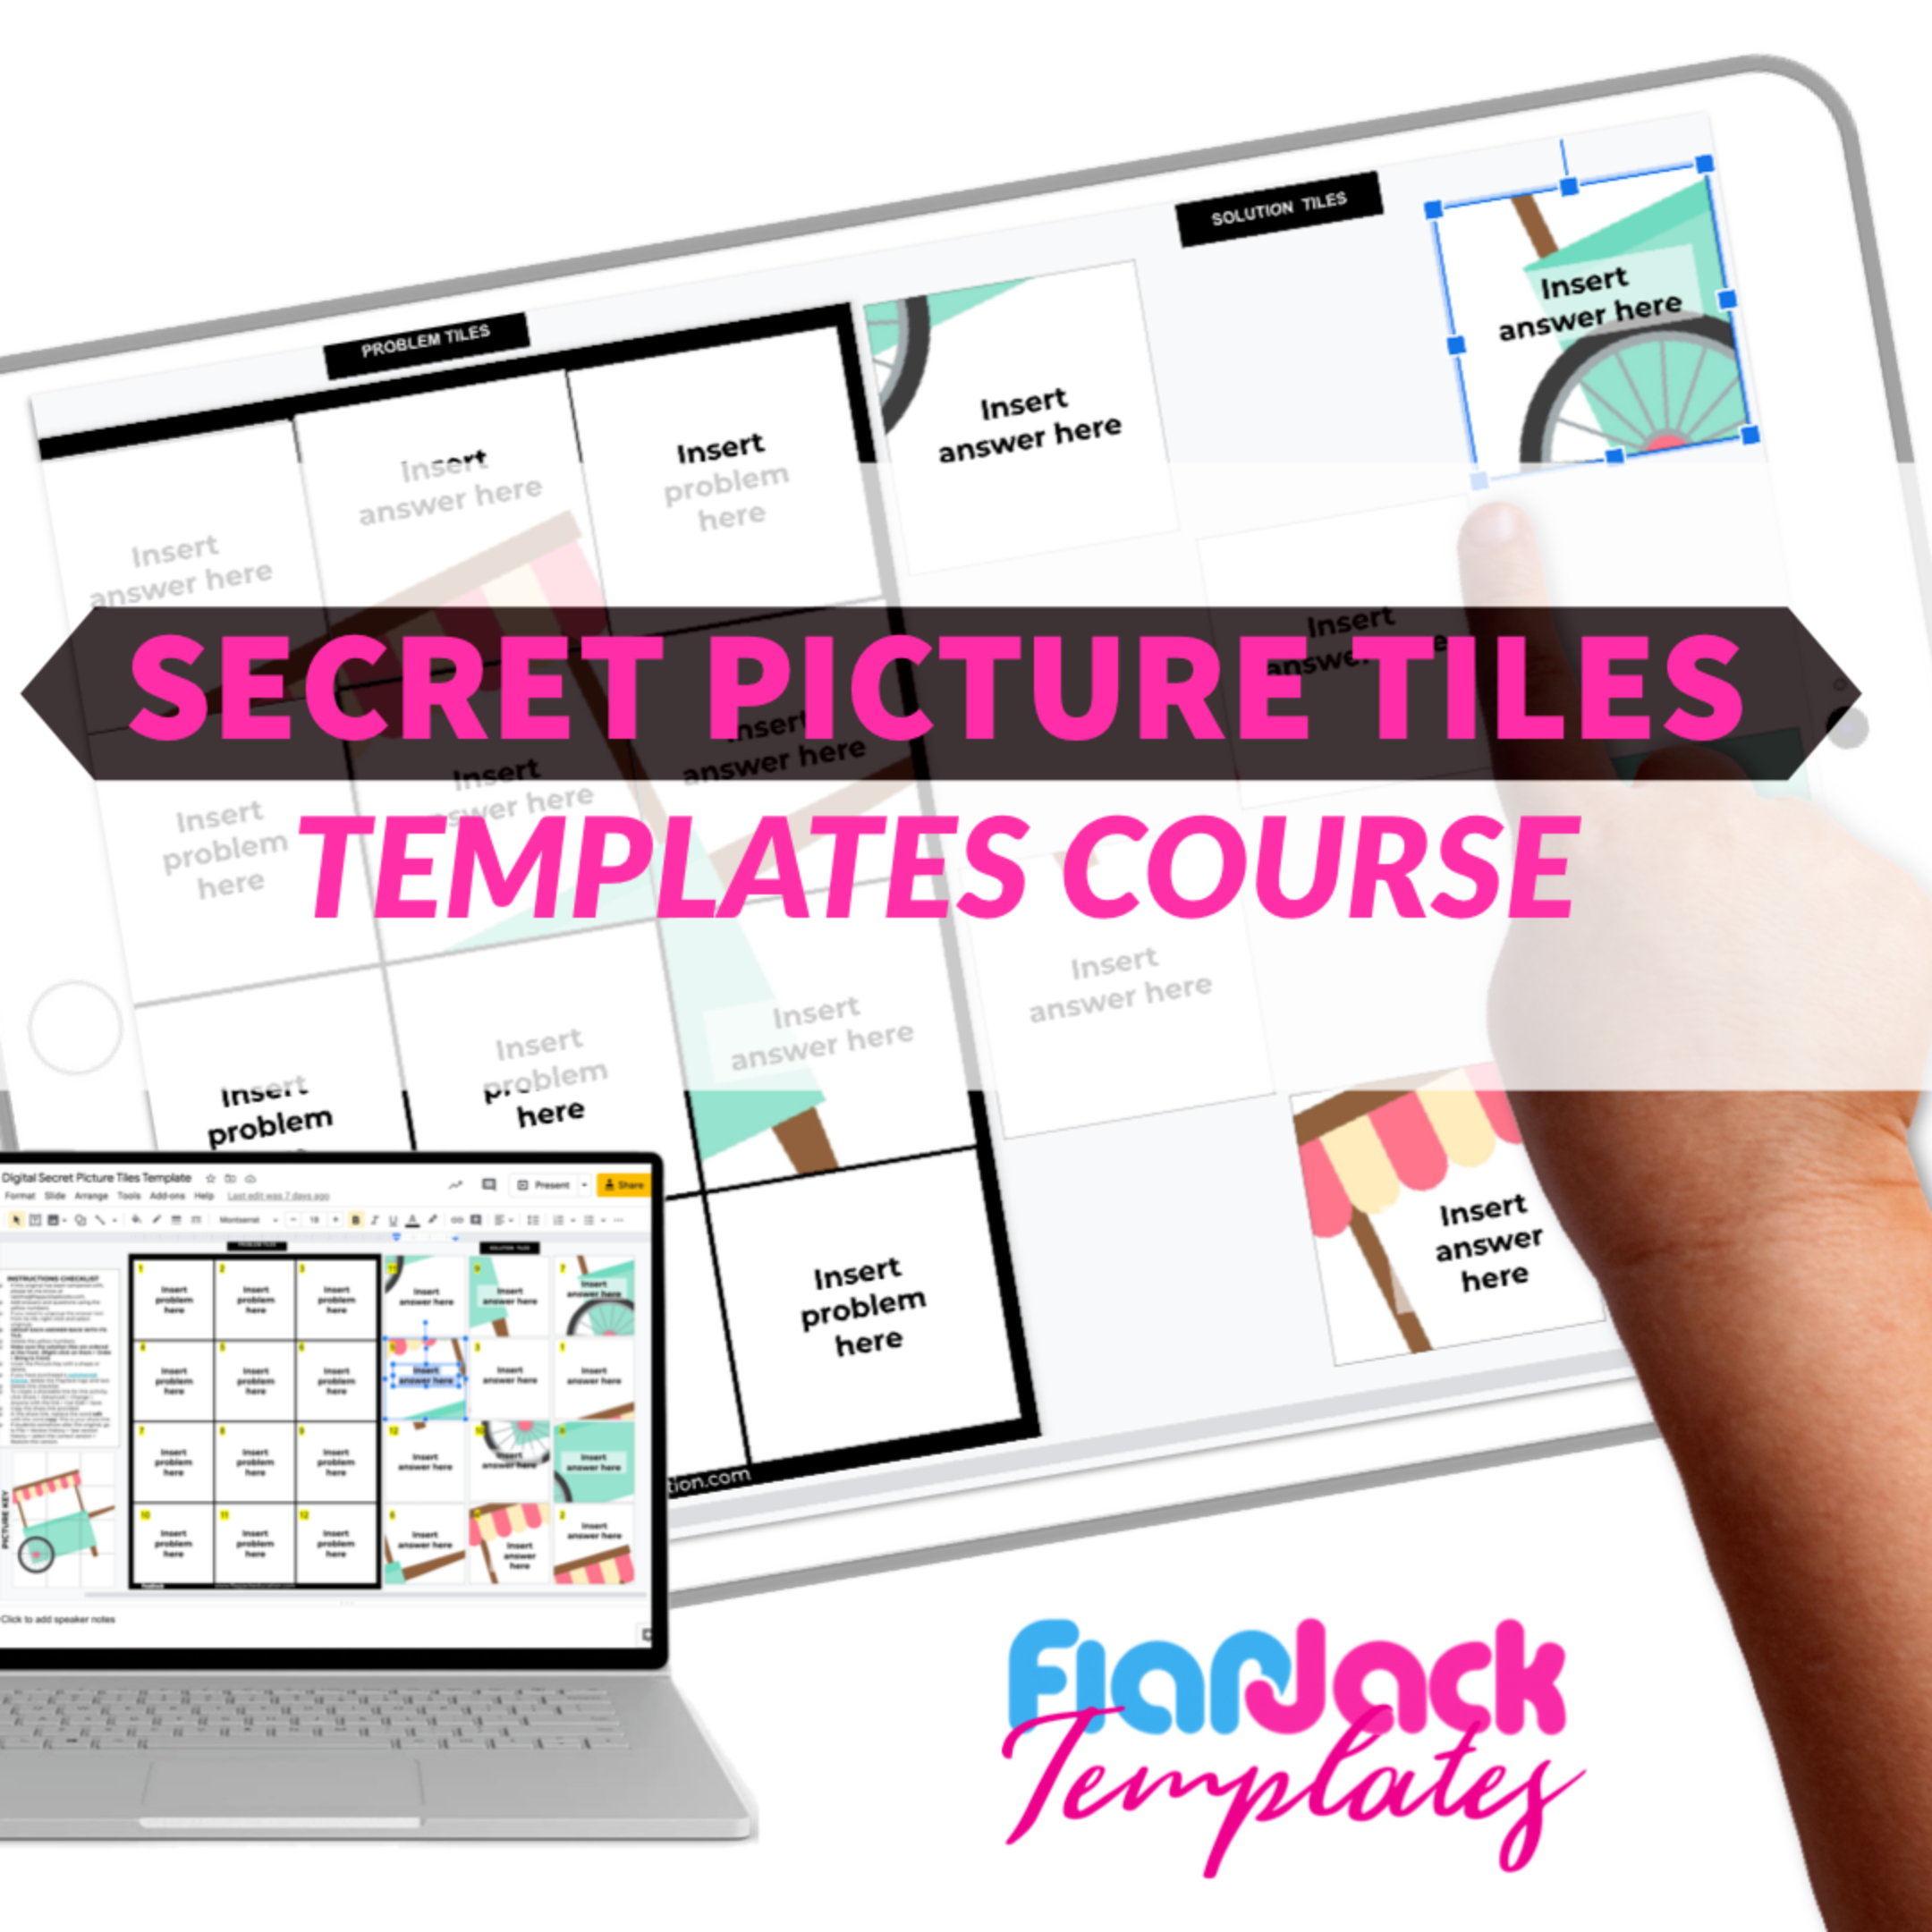 Secret Picture Tile Templates Course